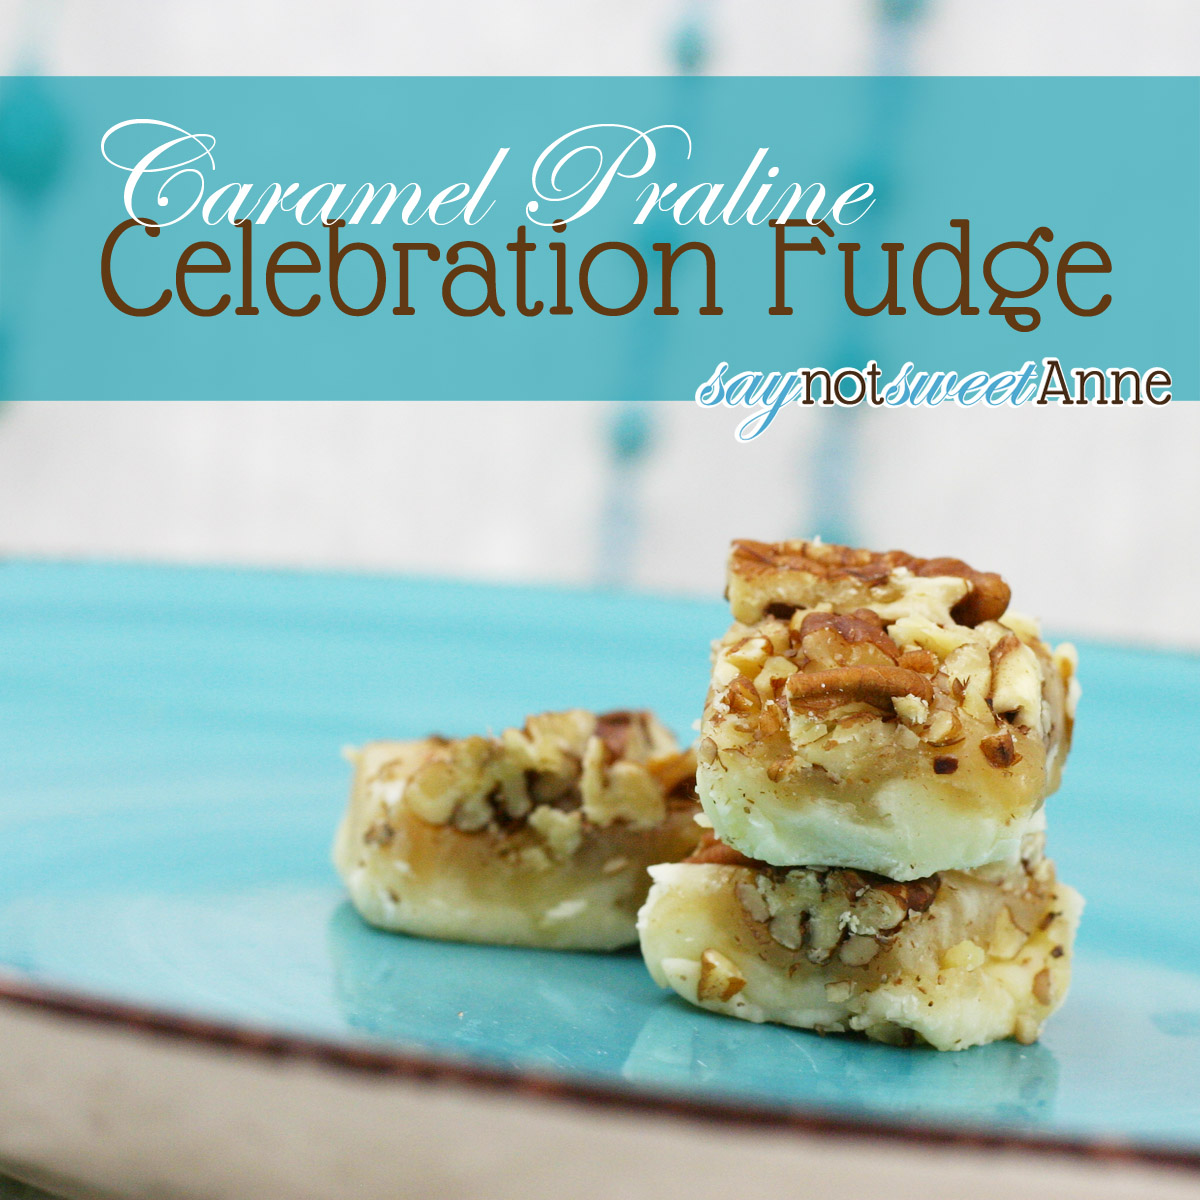 Caramel Praline Celebration Fudge